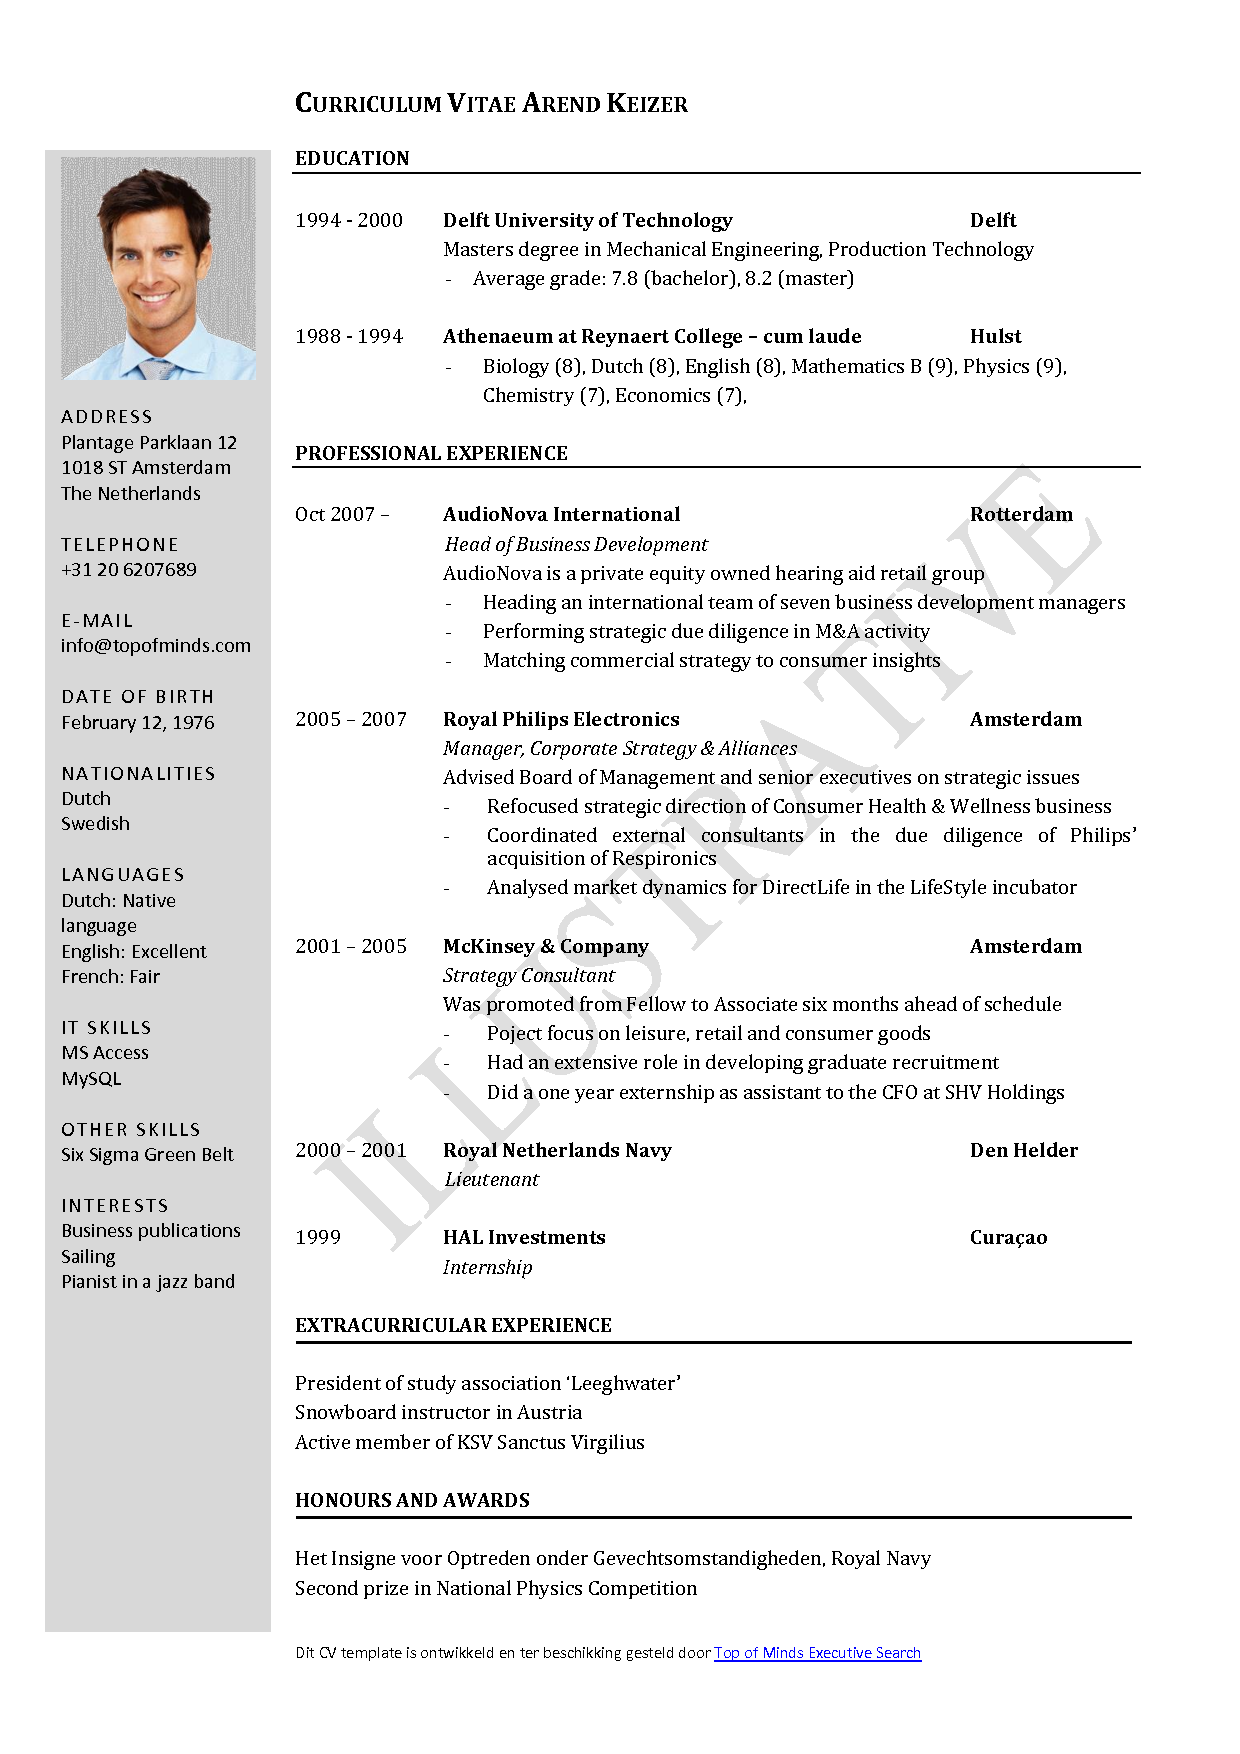 Template Curriculum Vitae Examples Of The Different Types Of Nontraditional Resumes